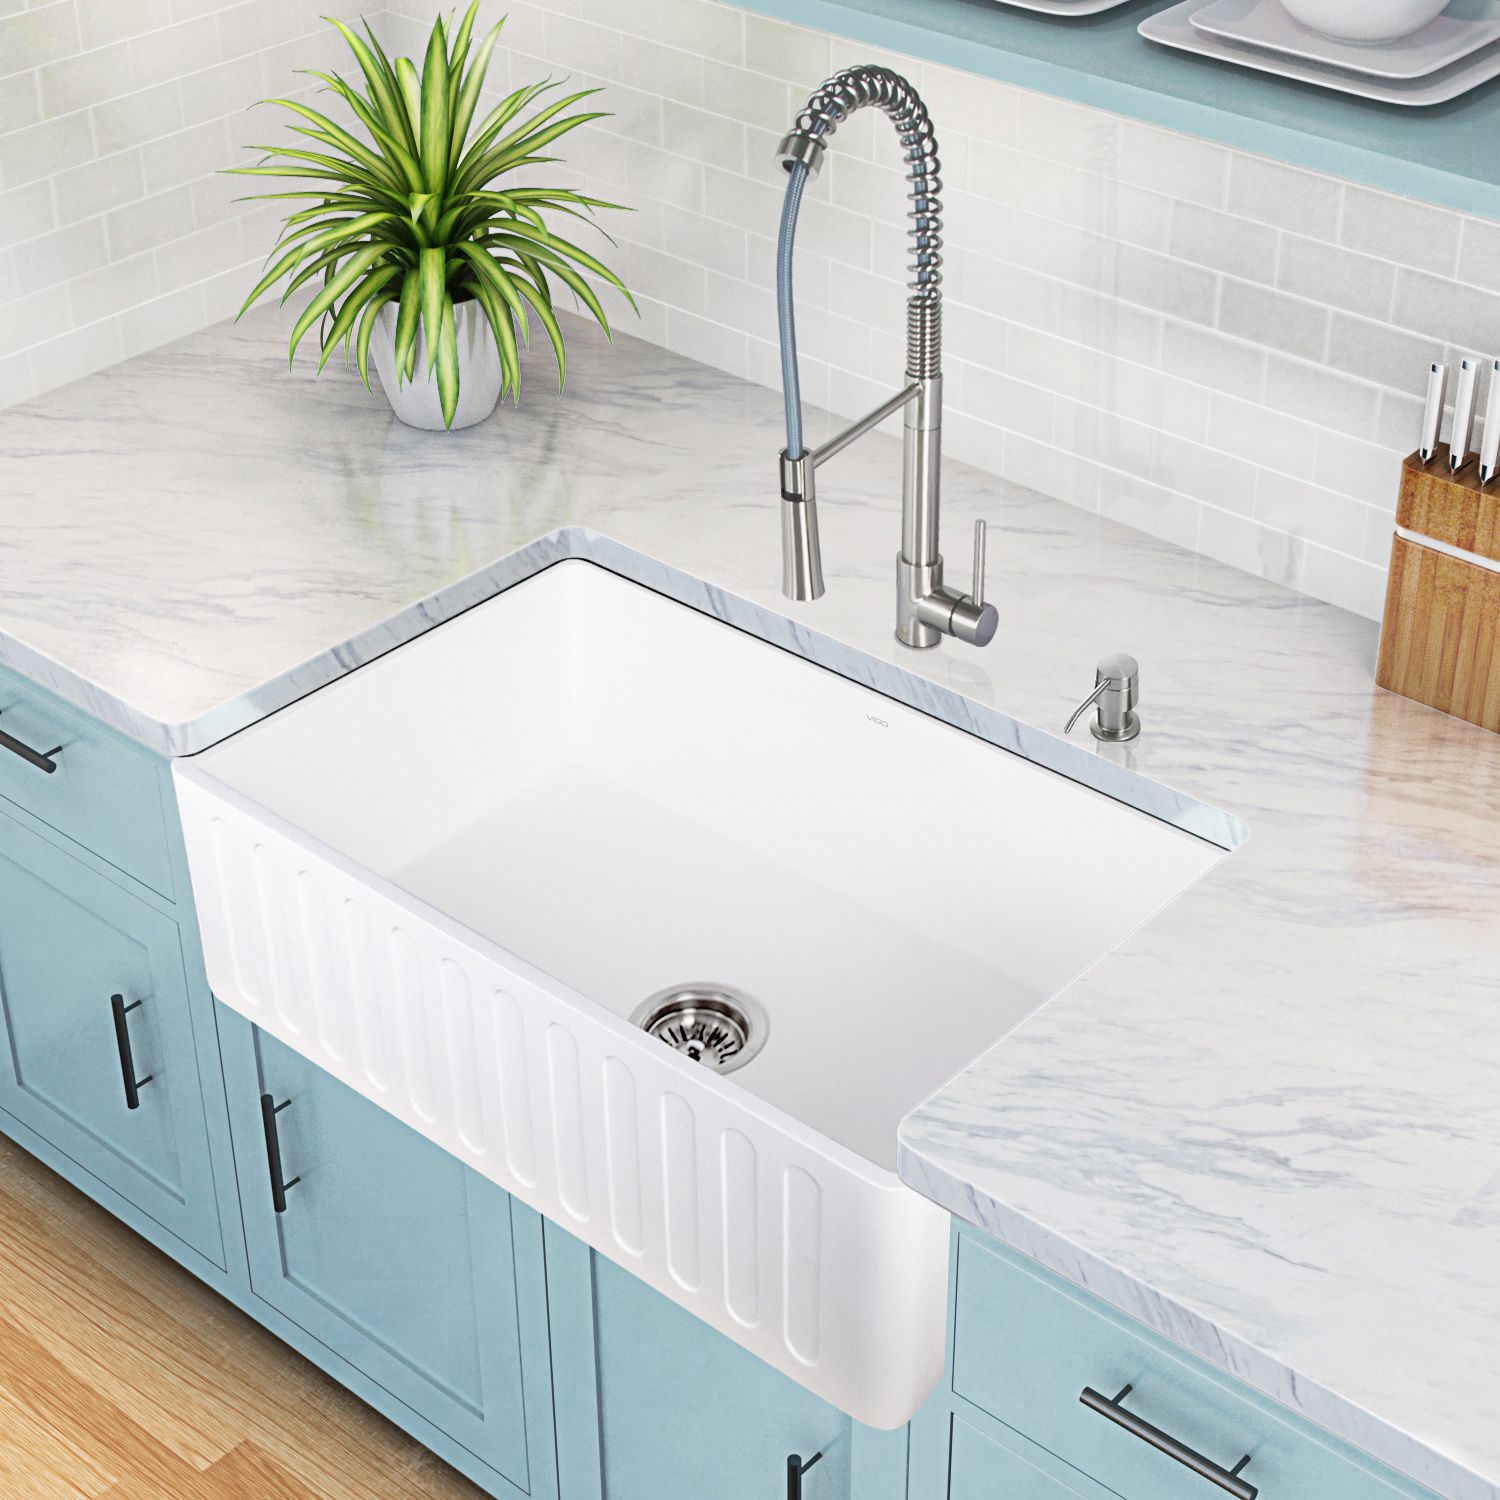 Overstock Farmhouse Sink Vigo Laurelton Stainless Steel Pull Down Spray Kitchen